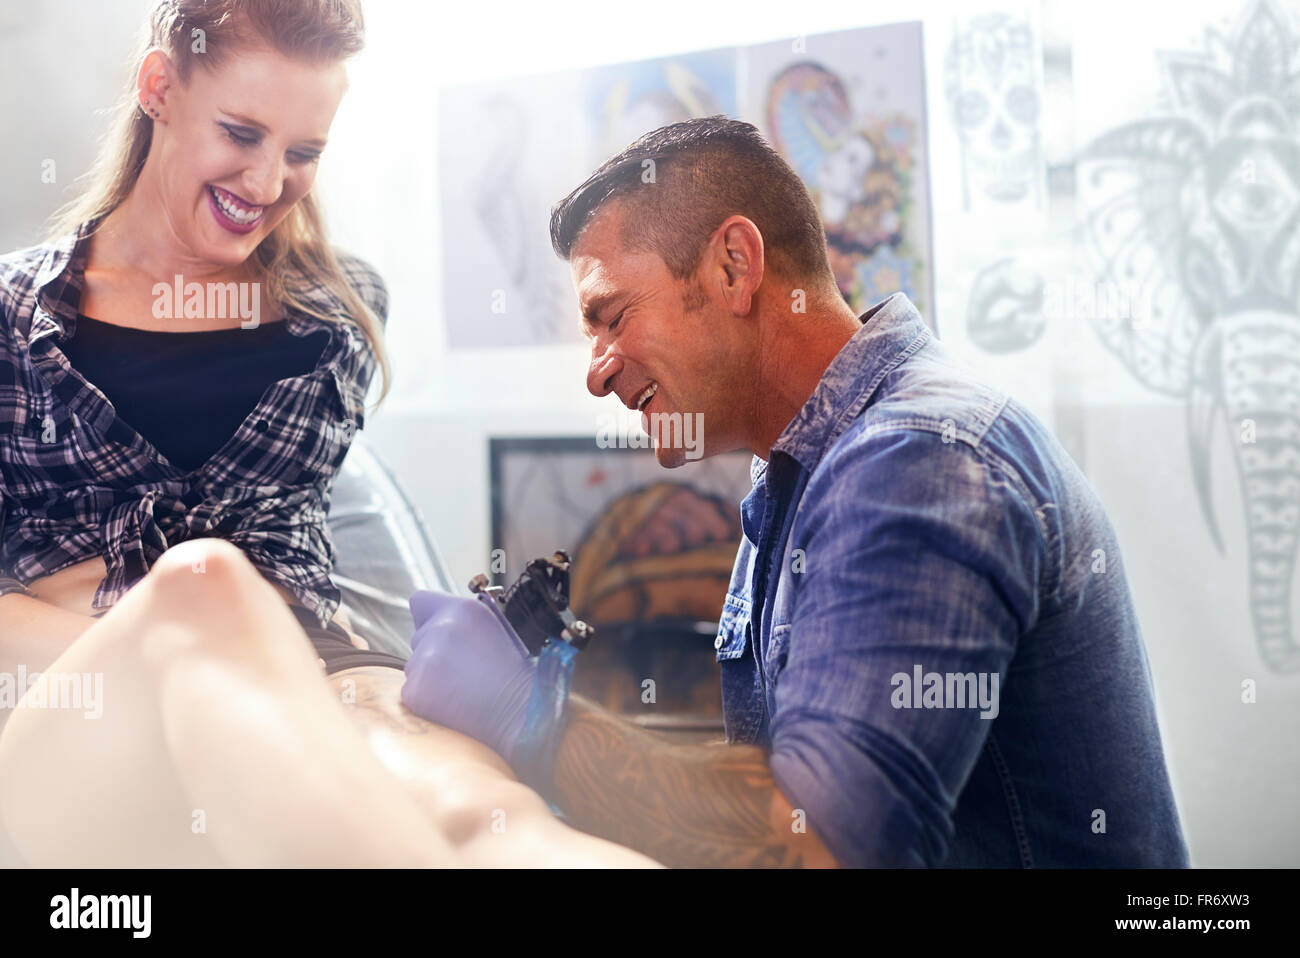 Tattoo artist tattooing woman's thigh - Stock Image